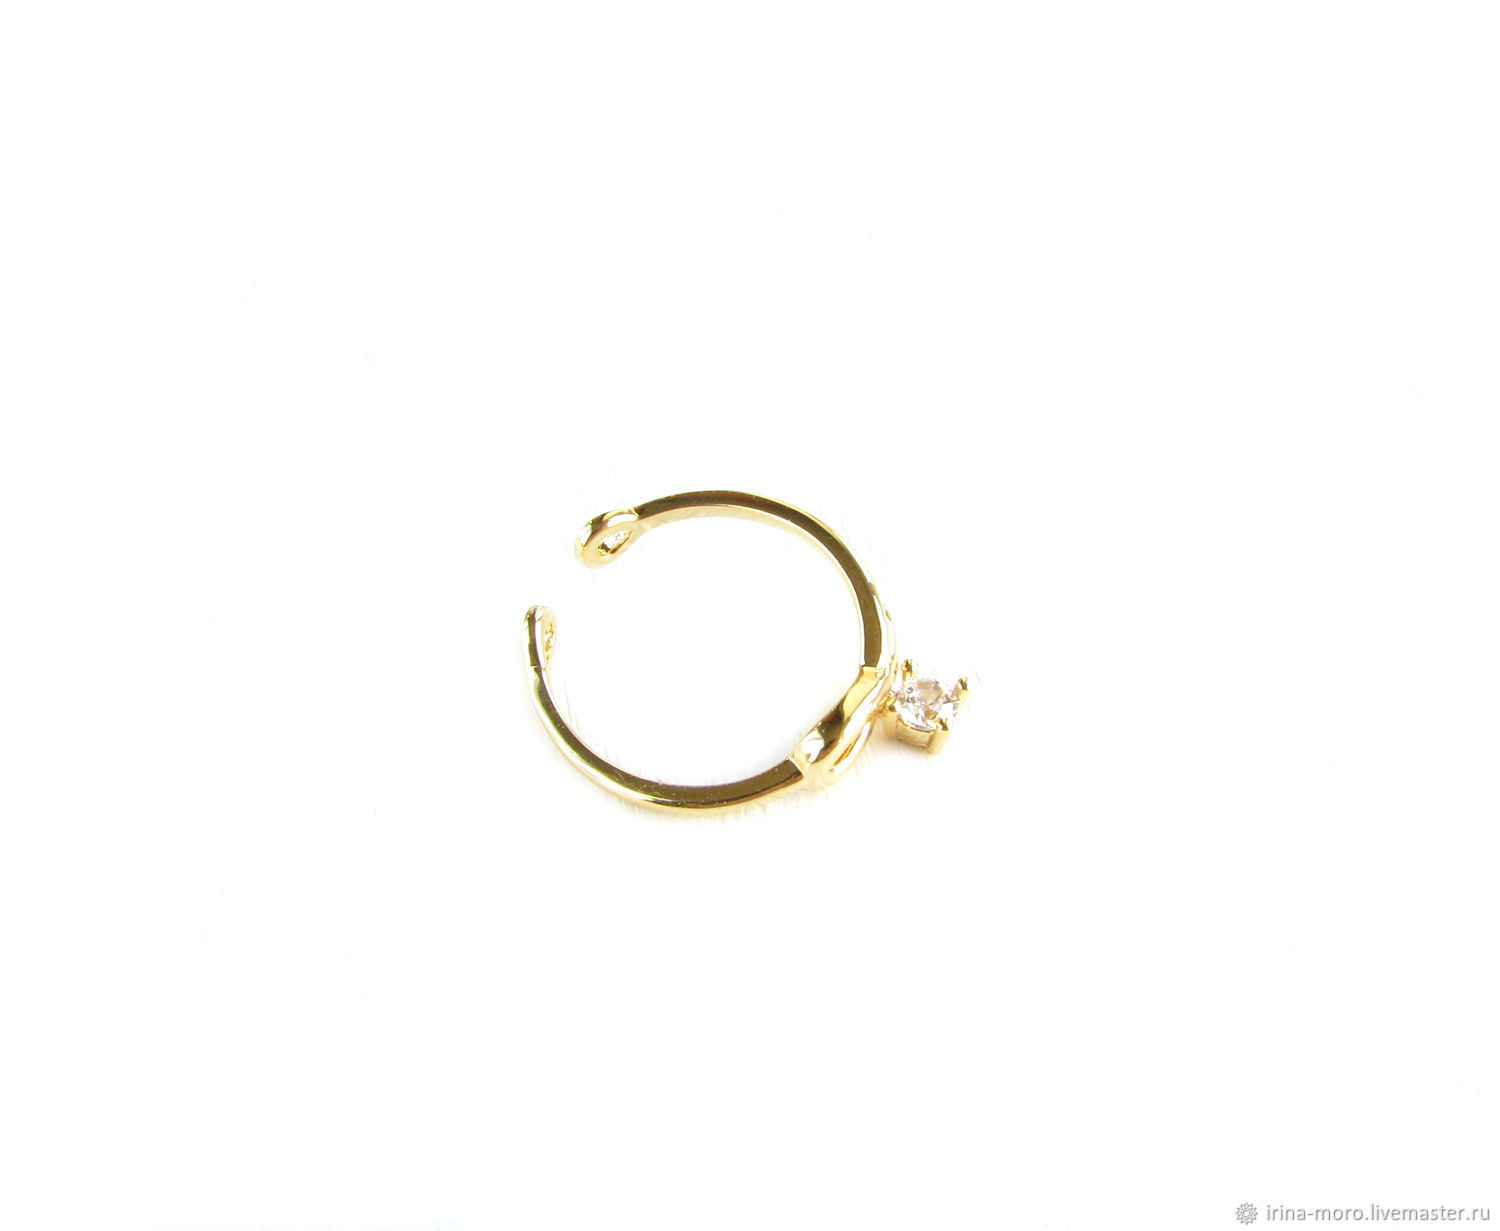 Gold ring with cubic Zirconia, ring with pendant element, Rings, Moscow,  Фото №1